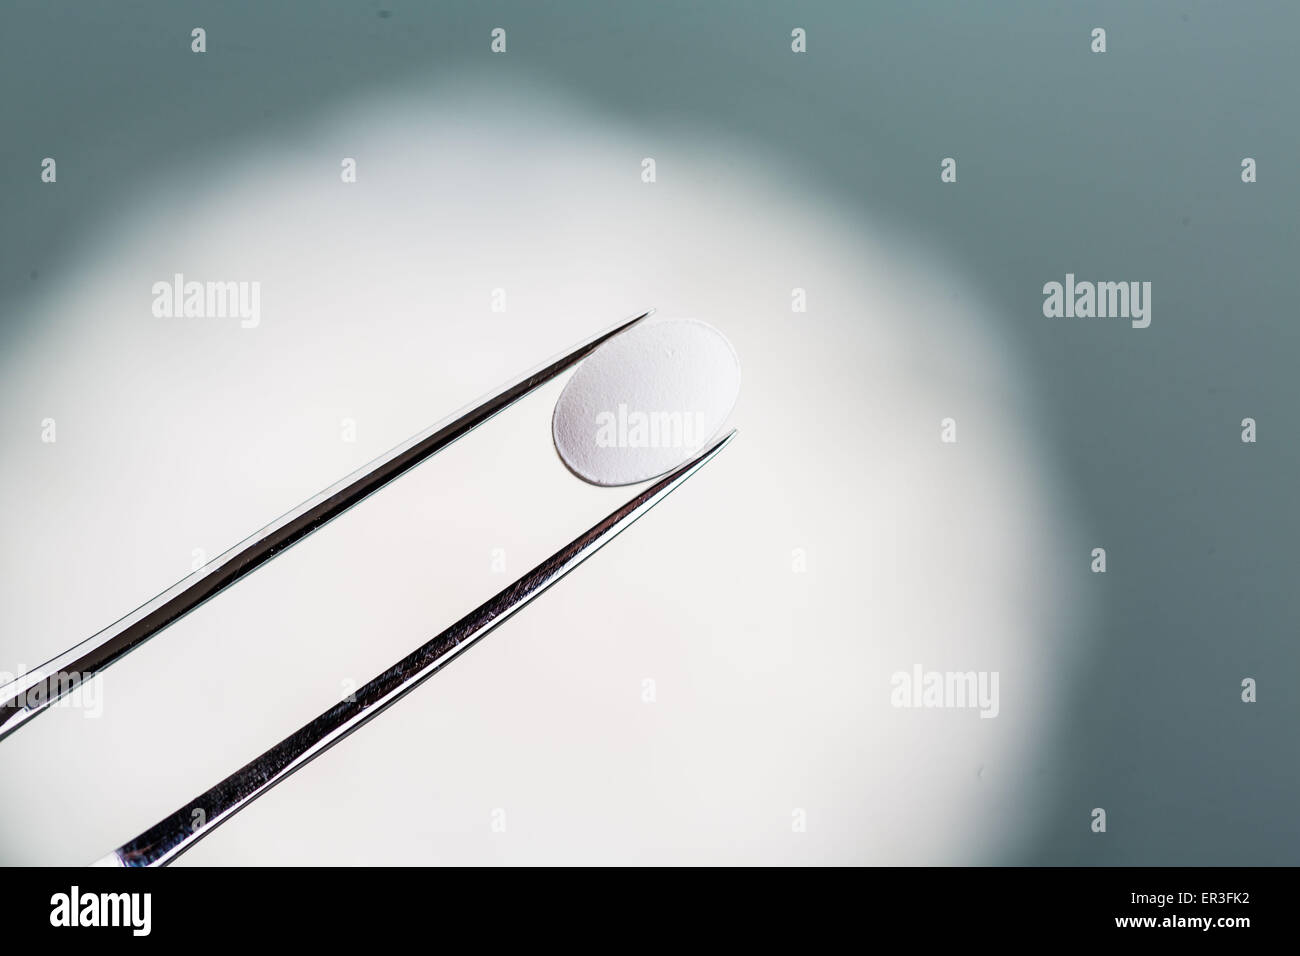 Pharmaceutical research. - Stock Image